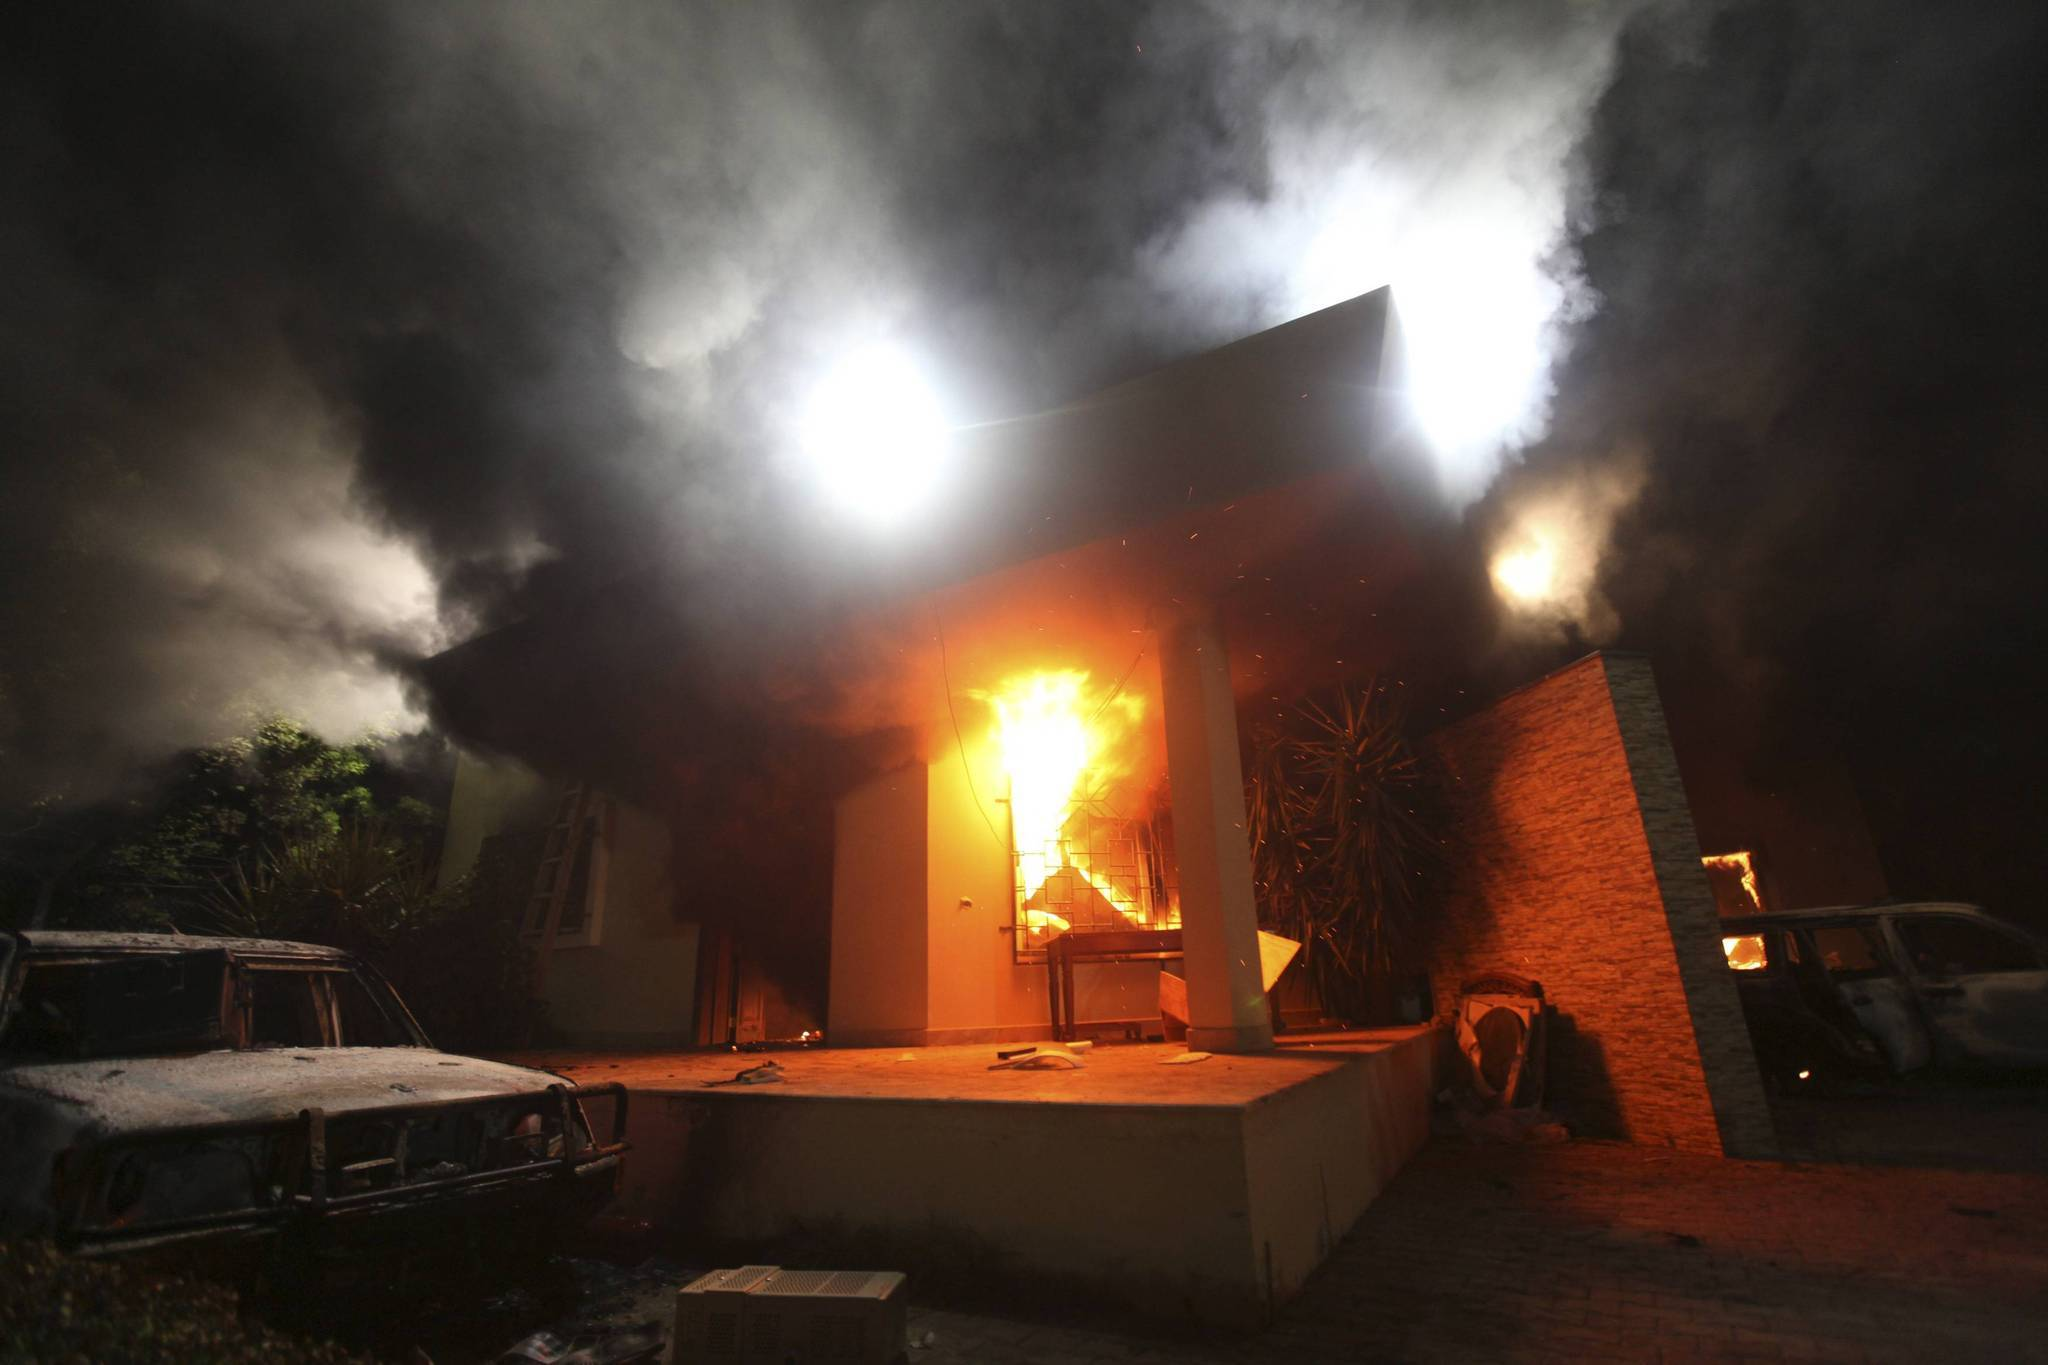 The U.S. Consulate in Benghazi is seen in flames during a 2012 attack that killed four Americans.